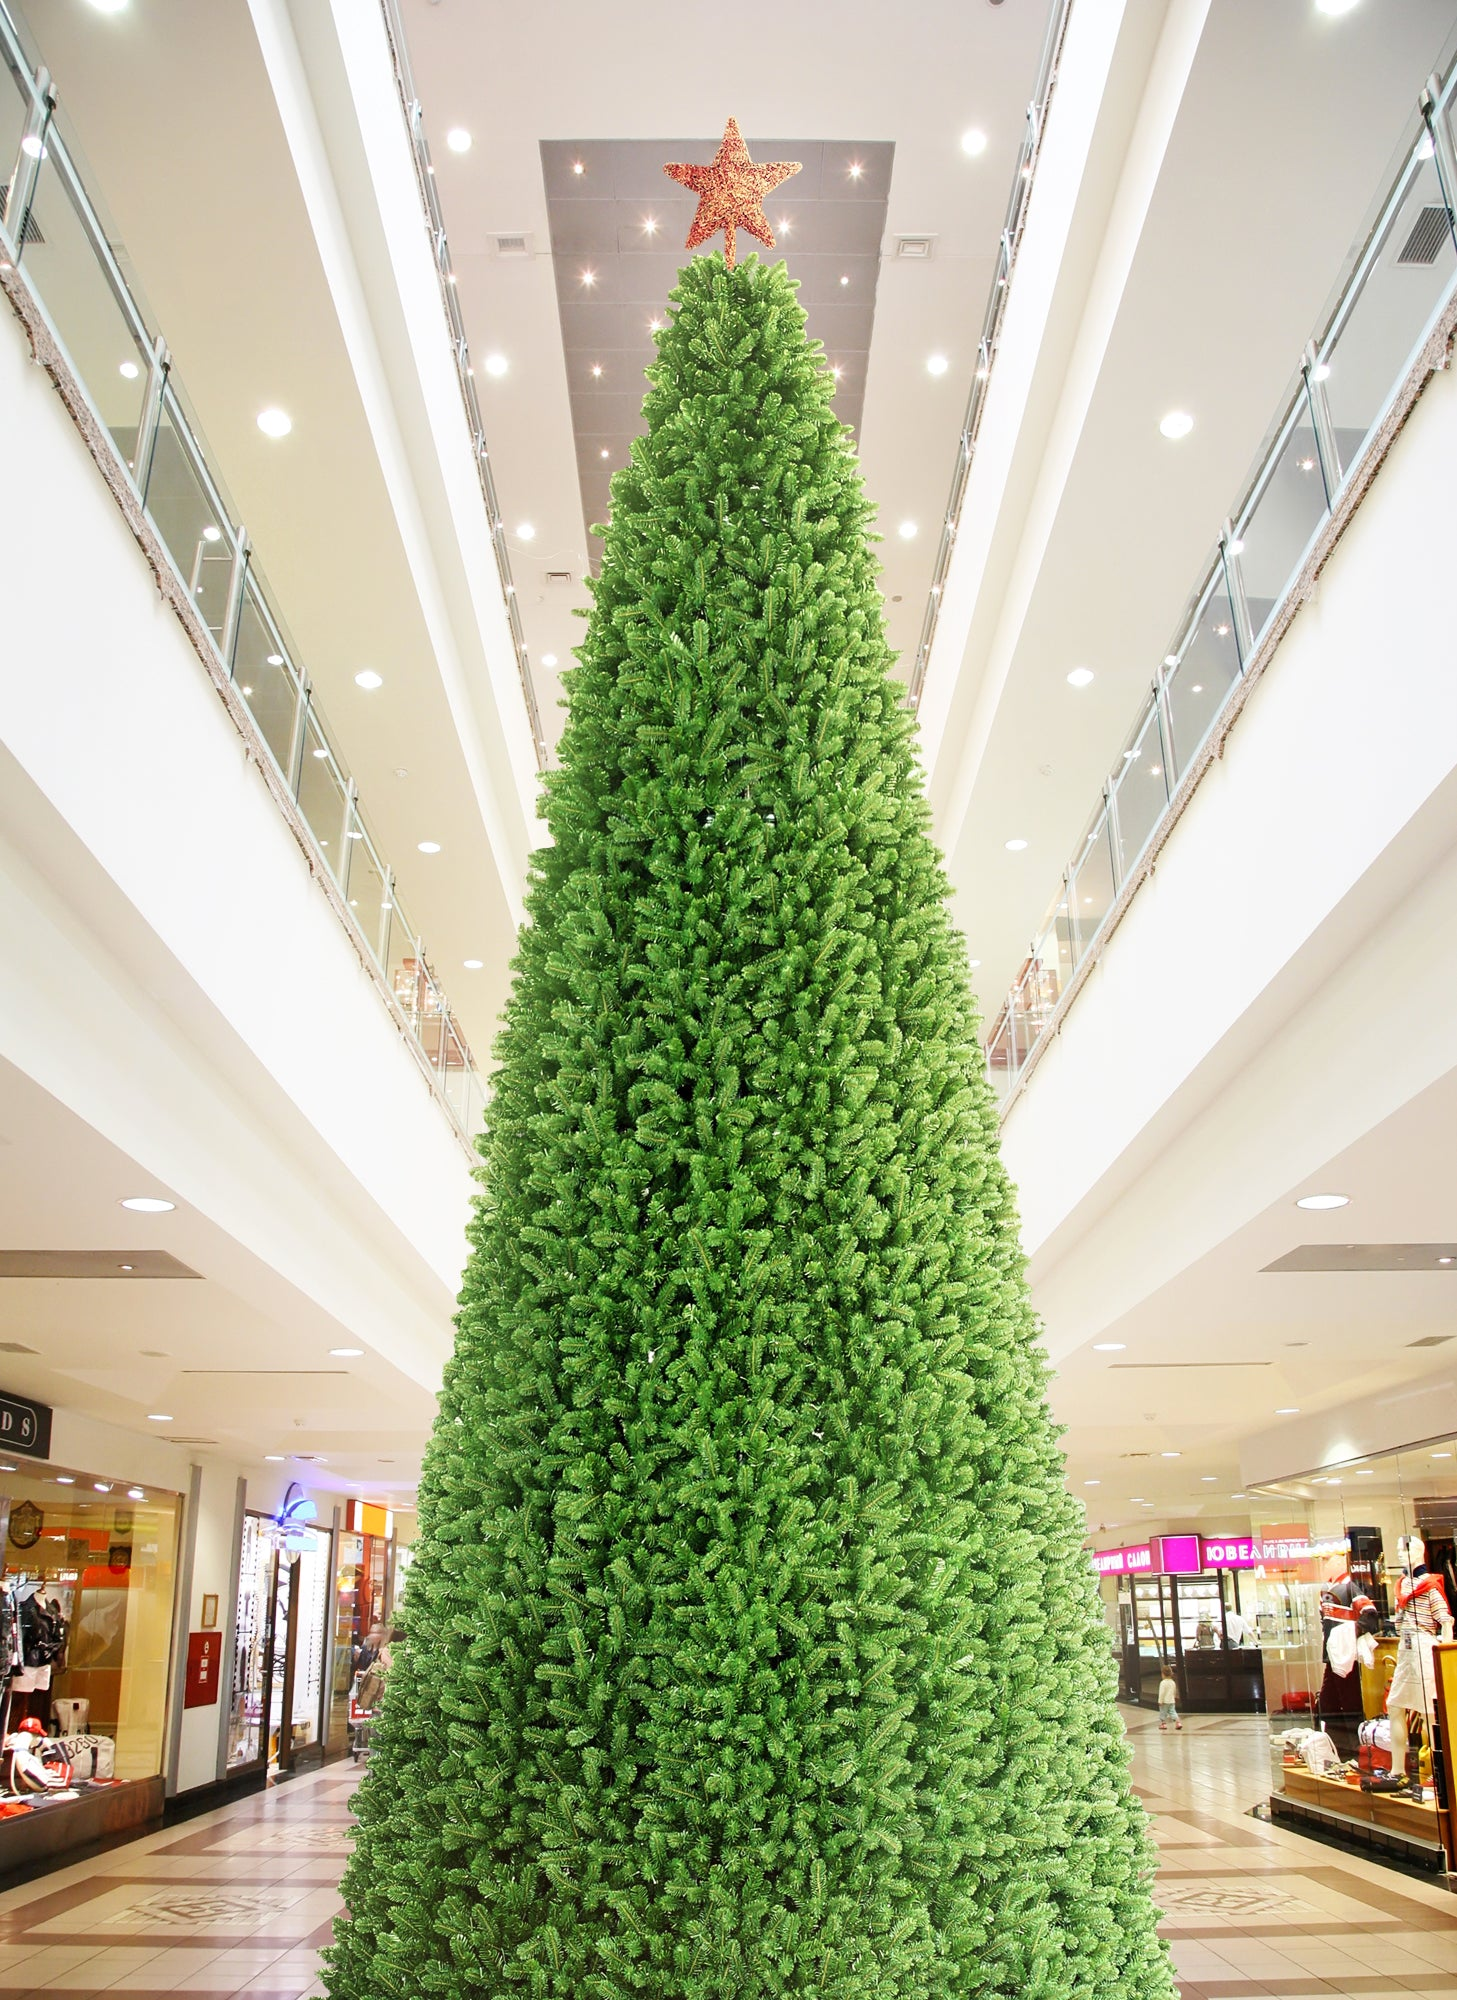 Commercial Christmas Tree.20 Foot Giant Commercial Artificial Christmas Tree With Warm